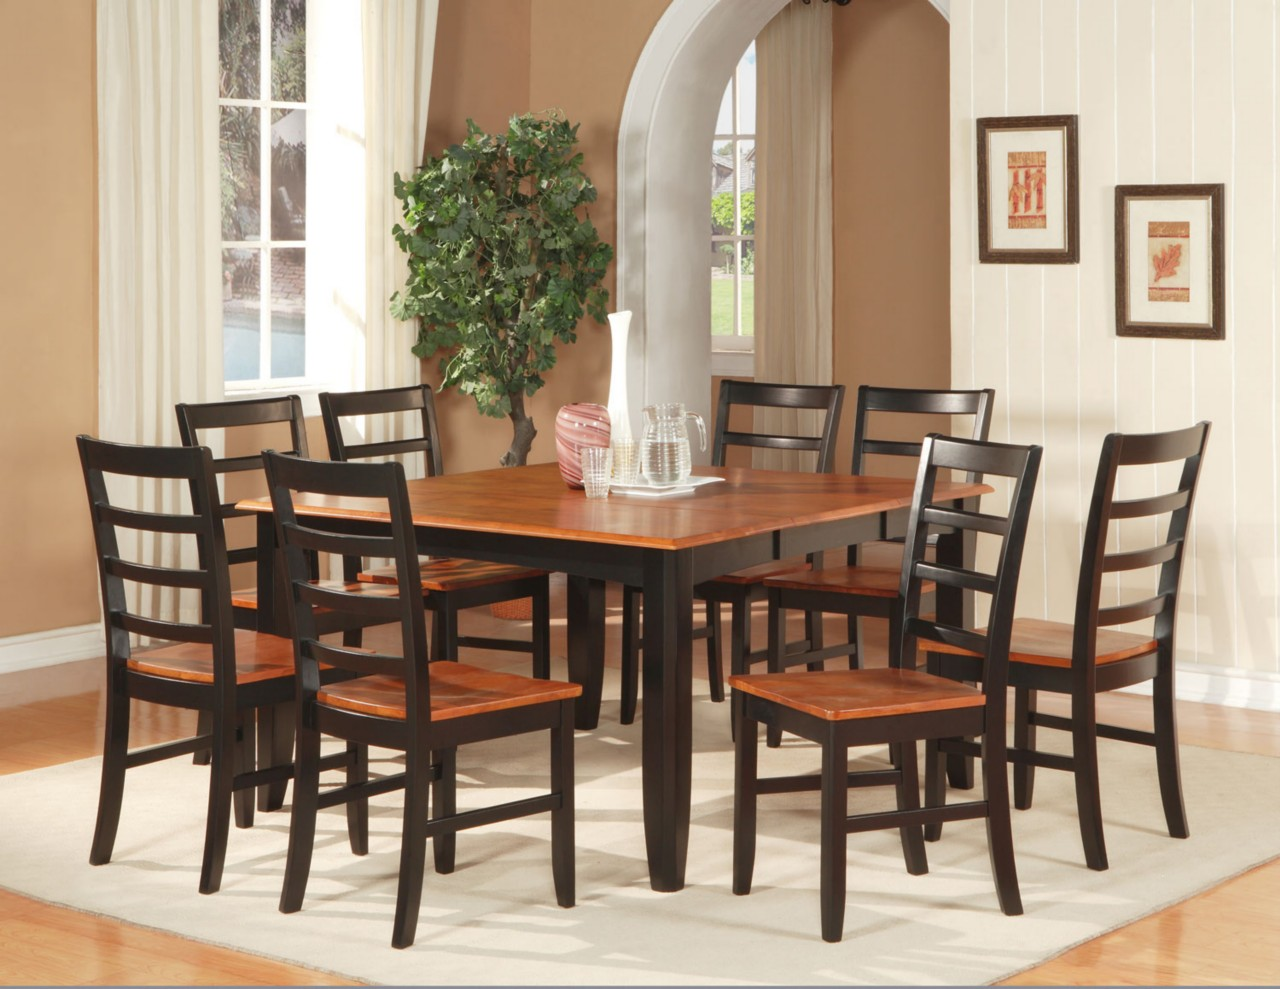 Dinettestyle Store For Many More Dining Dinette Kitchen Table Chairs